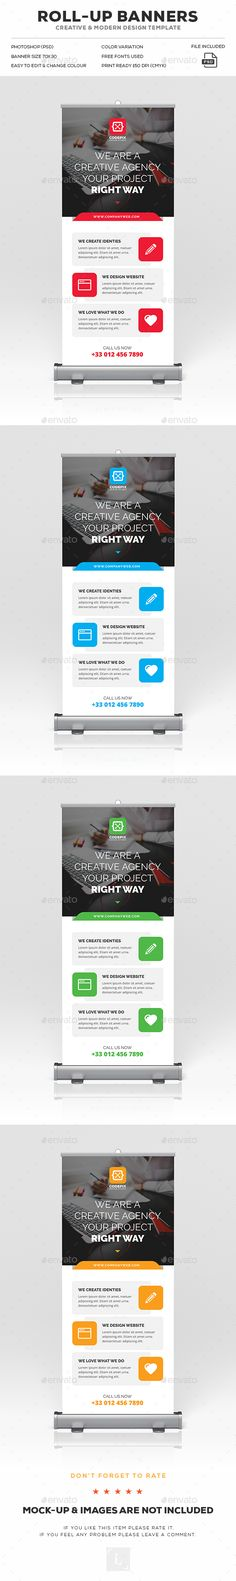 Corporate Roll-Up Banner Template PSD. Download here: https://graphicriver.net/item/corporate-rollup-banner/17029670?ref=ksioks